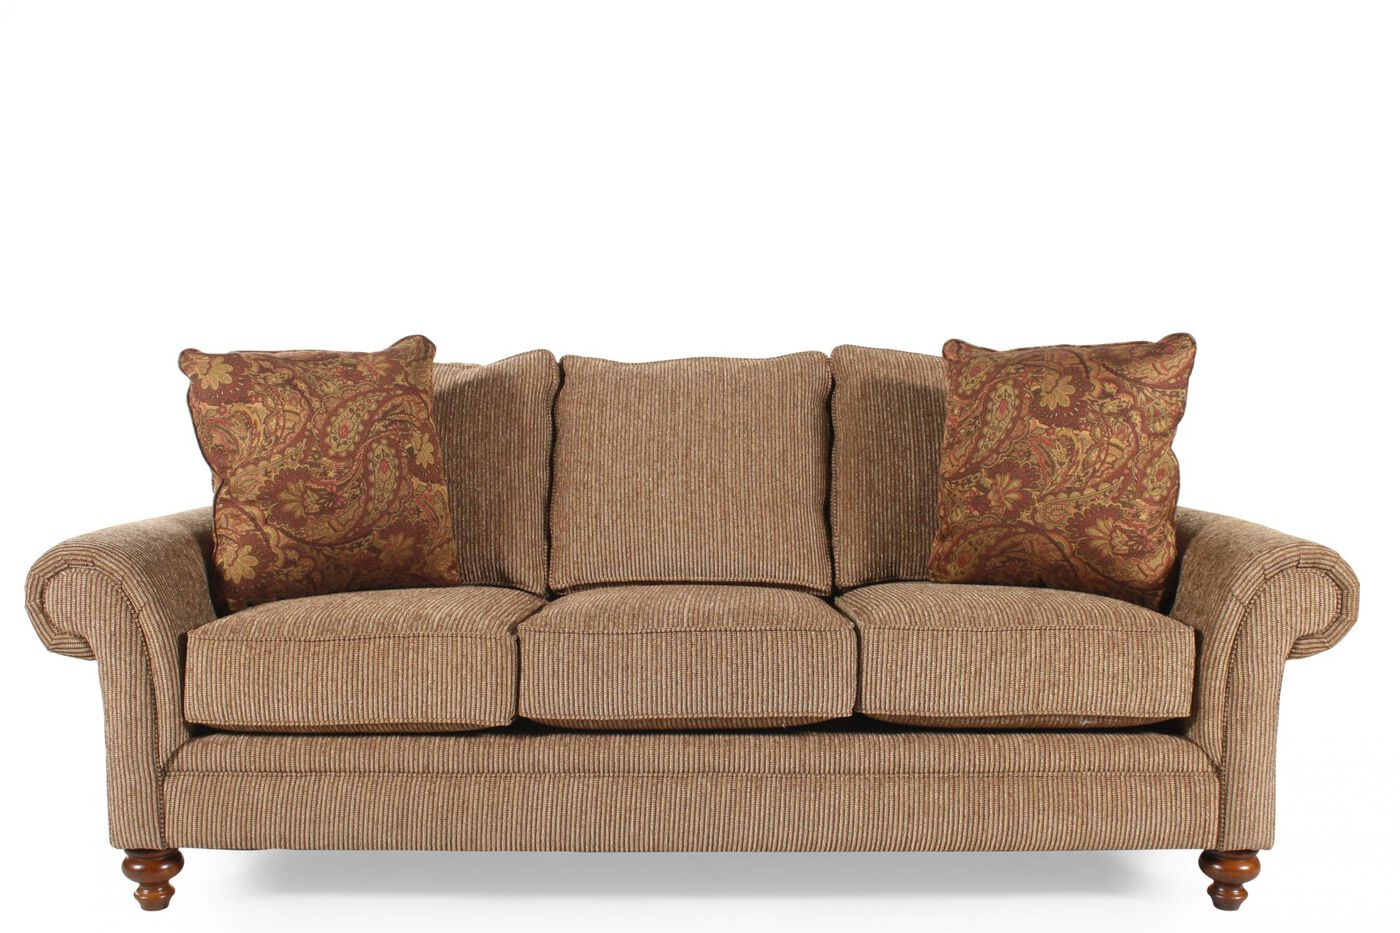 Corduroy casual 88 sofa in nut brown mathis brothers for Brown corduroy couch